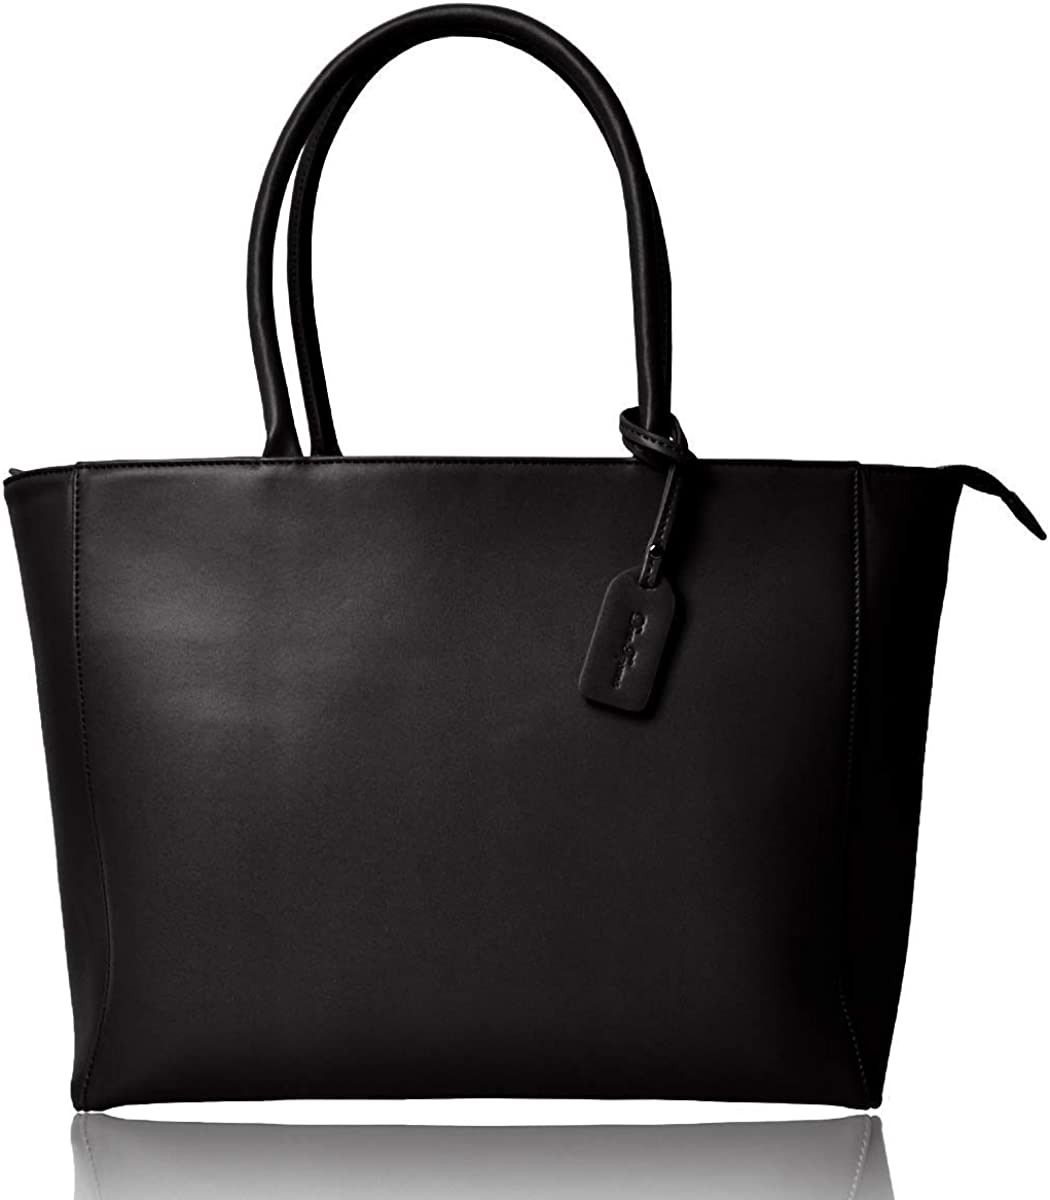 Dom Teporna Genuine Leather and Full Grain Leather Handle Tote Bag for Women High Capacity Designed in Japan